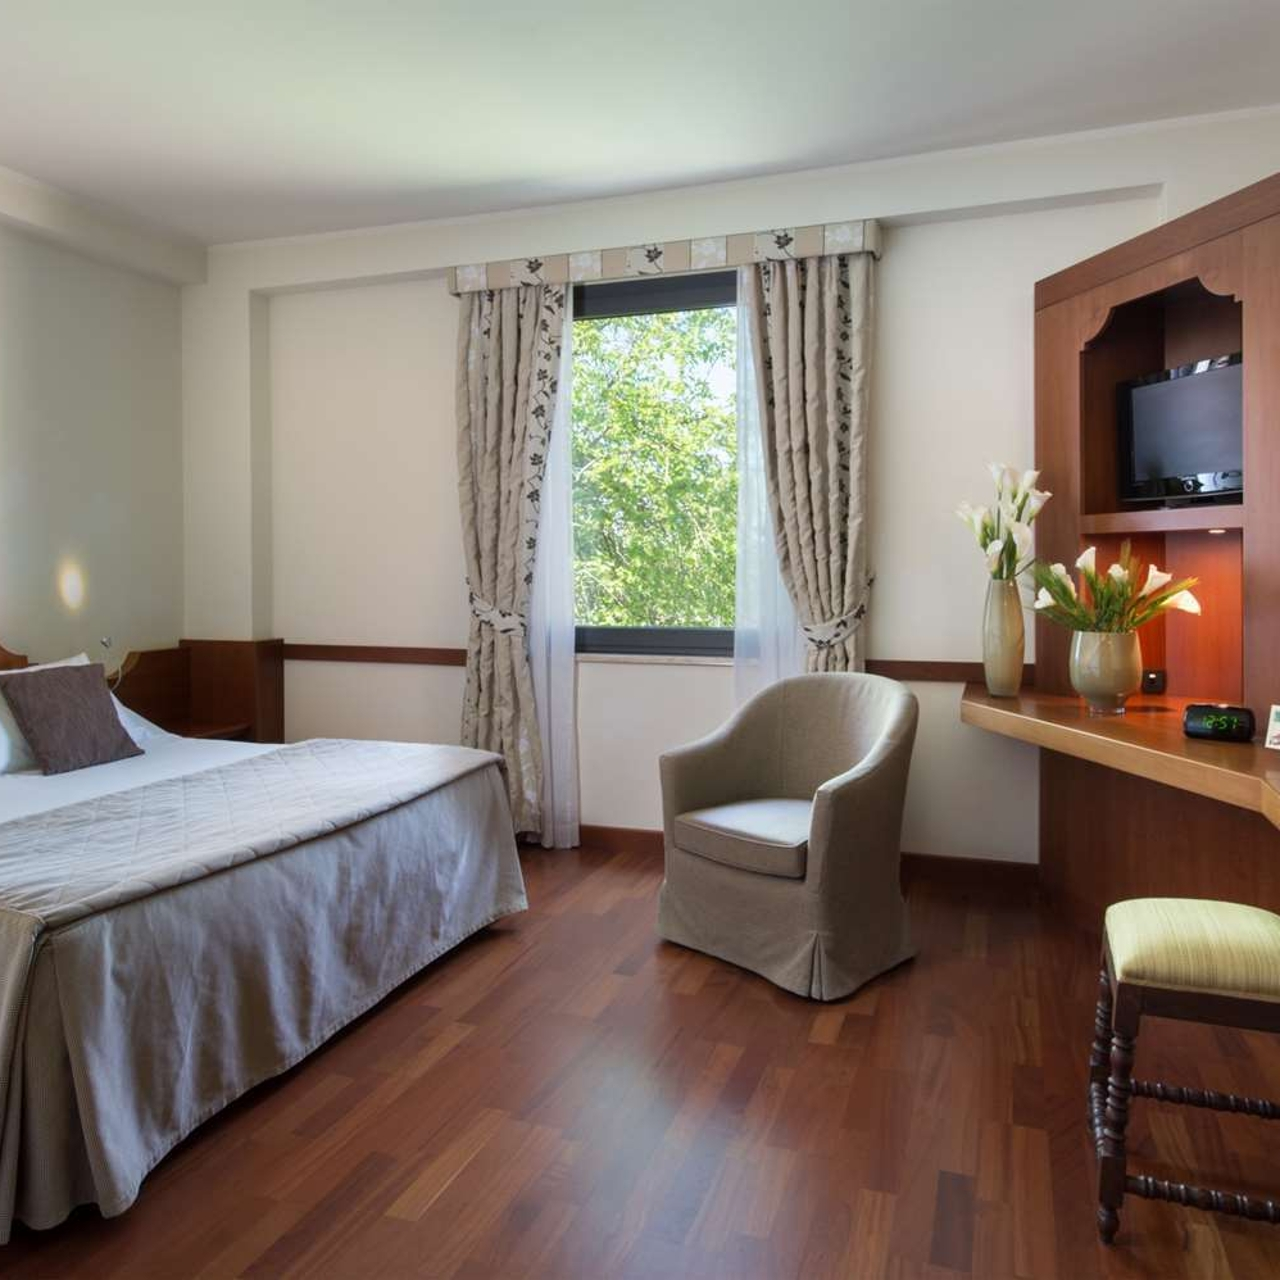 Valle Di Assisi Hotel Resort Spa 4 Hrs Star Hotel In Assisi Umbria